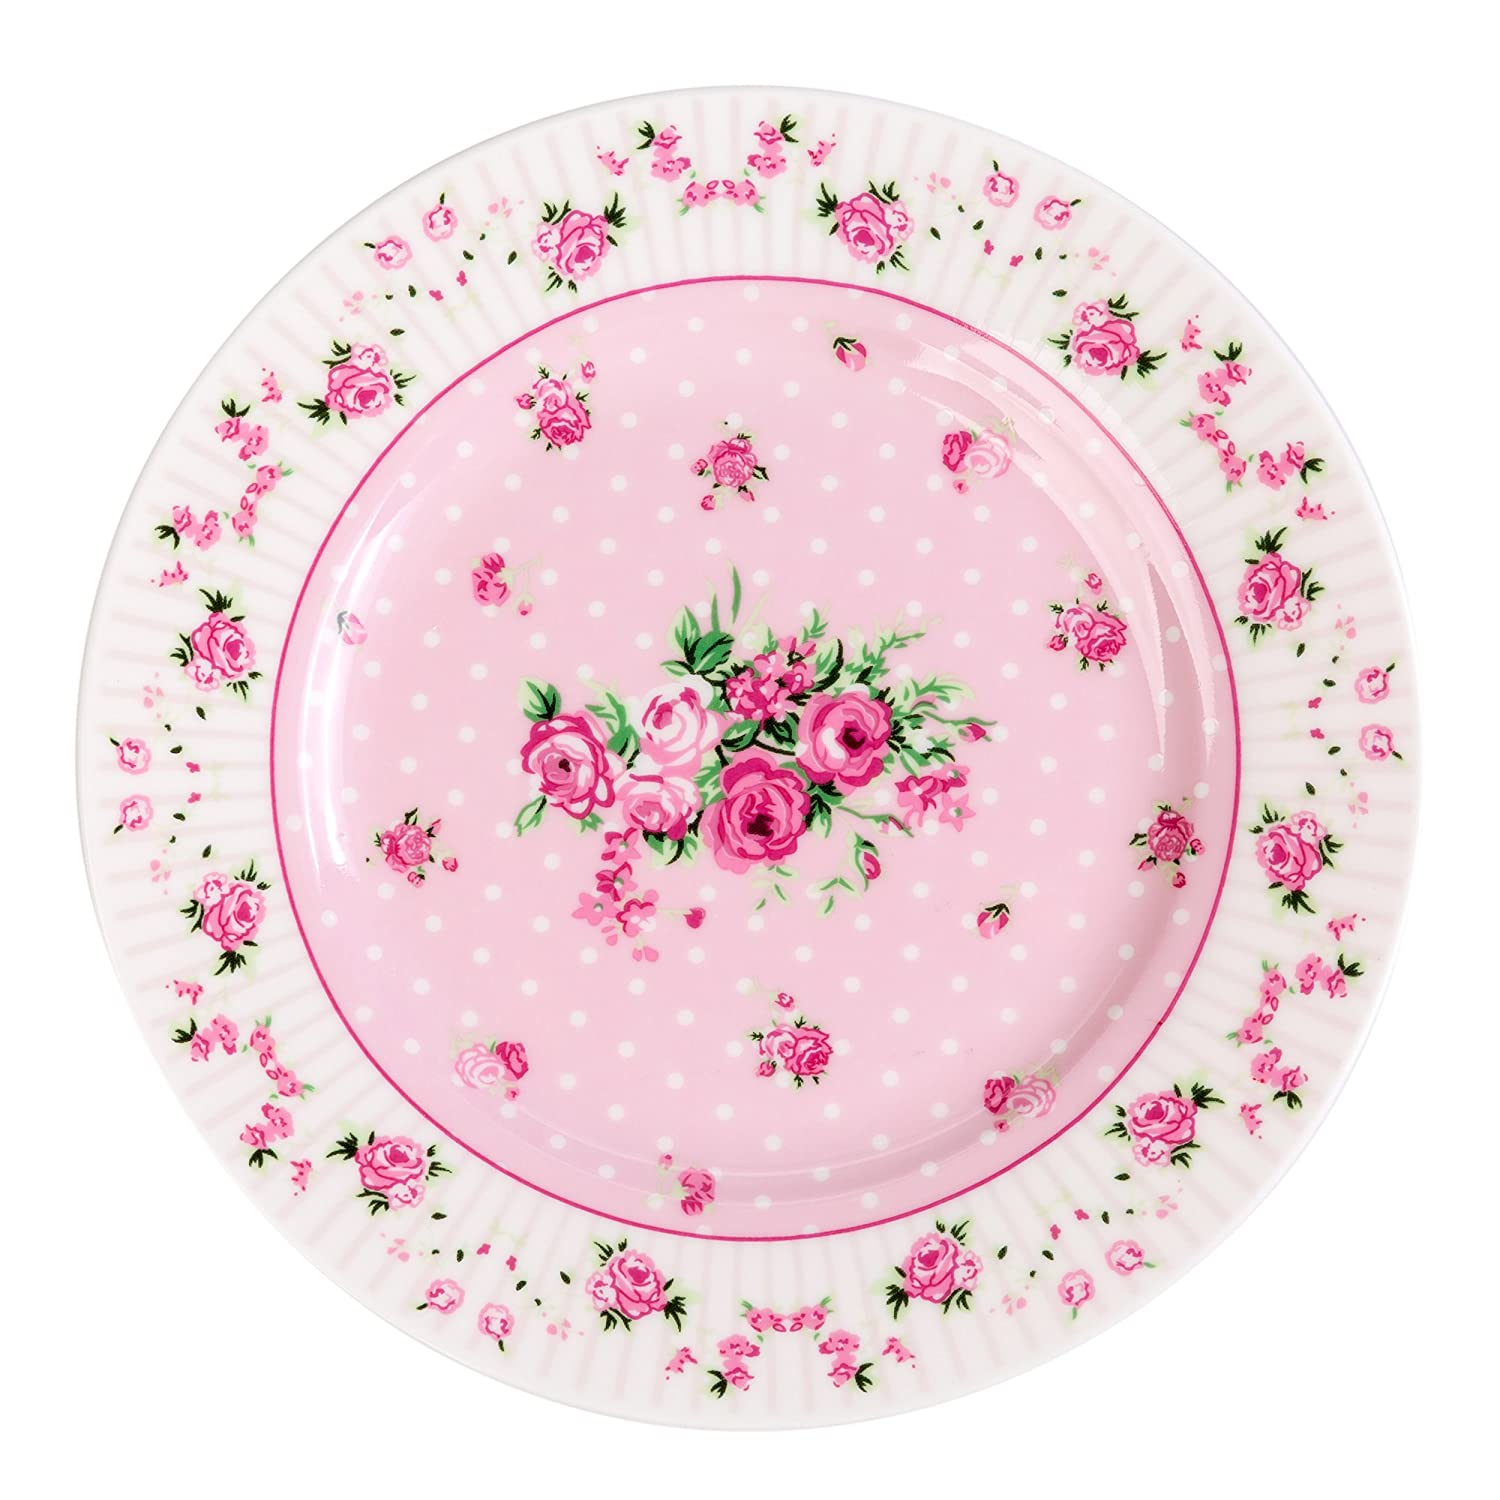 Porcelain Fine China Butterfly London Boutique Side Cake Dessert Plate Set in Retro Shabby Chic Gift Box